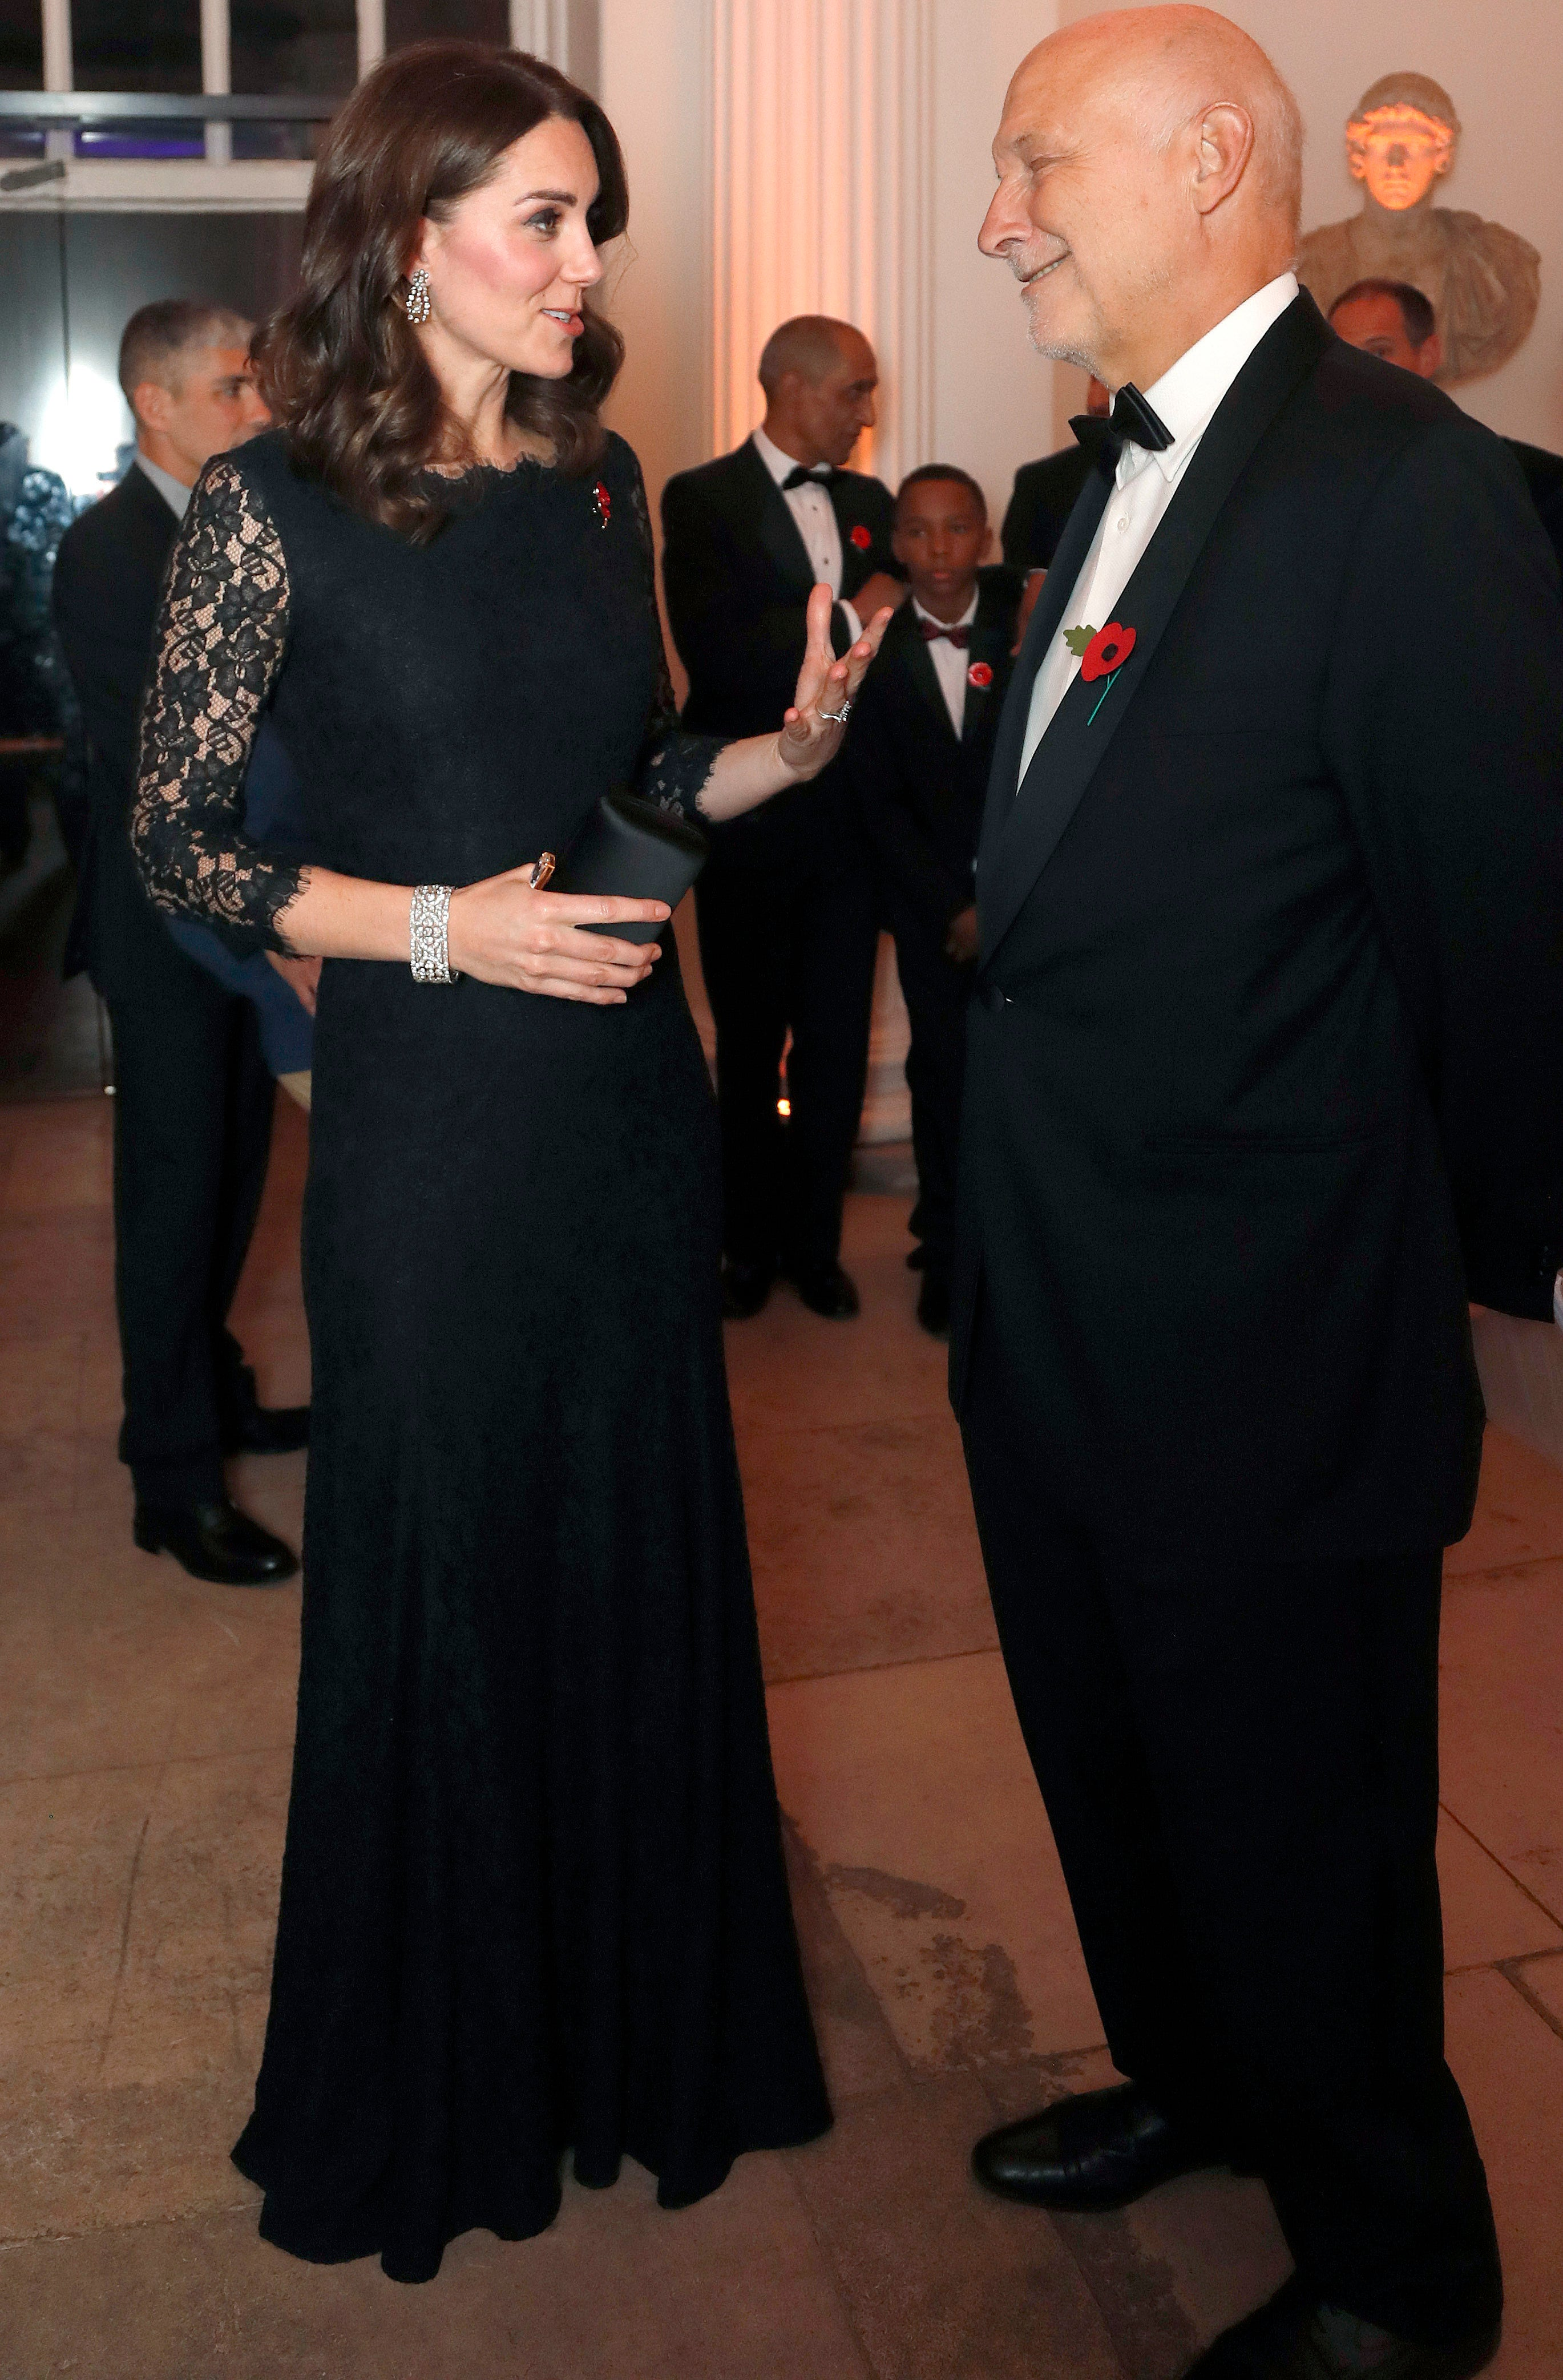 Pregnant Kate Middleton Recycles Chic Black Dress Also